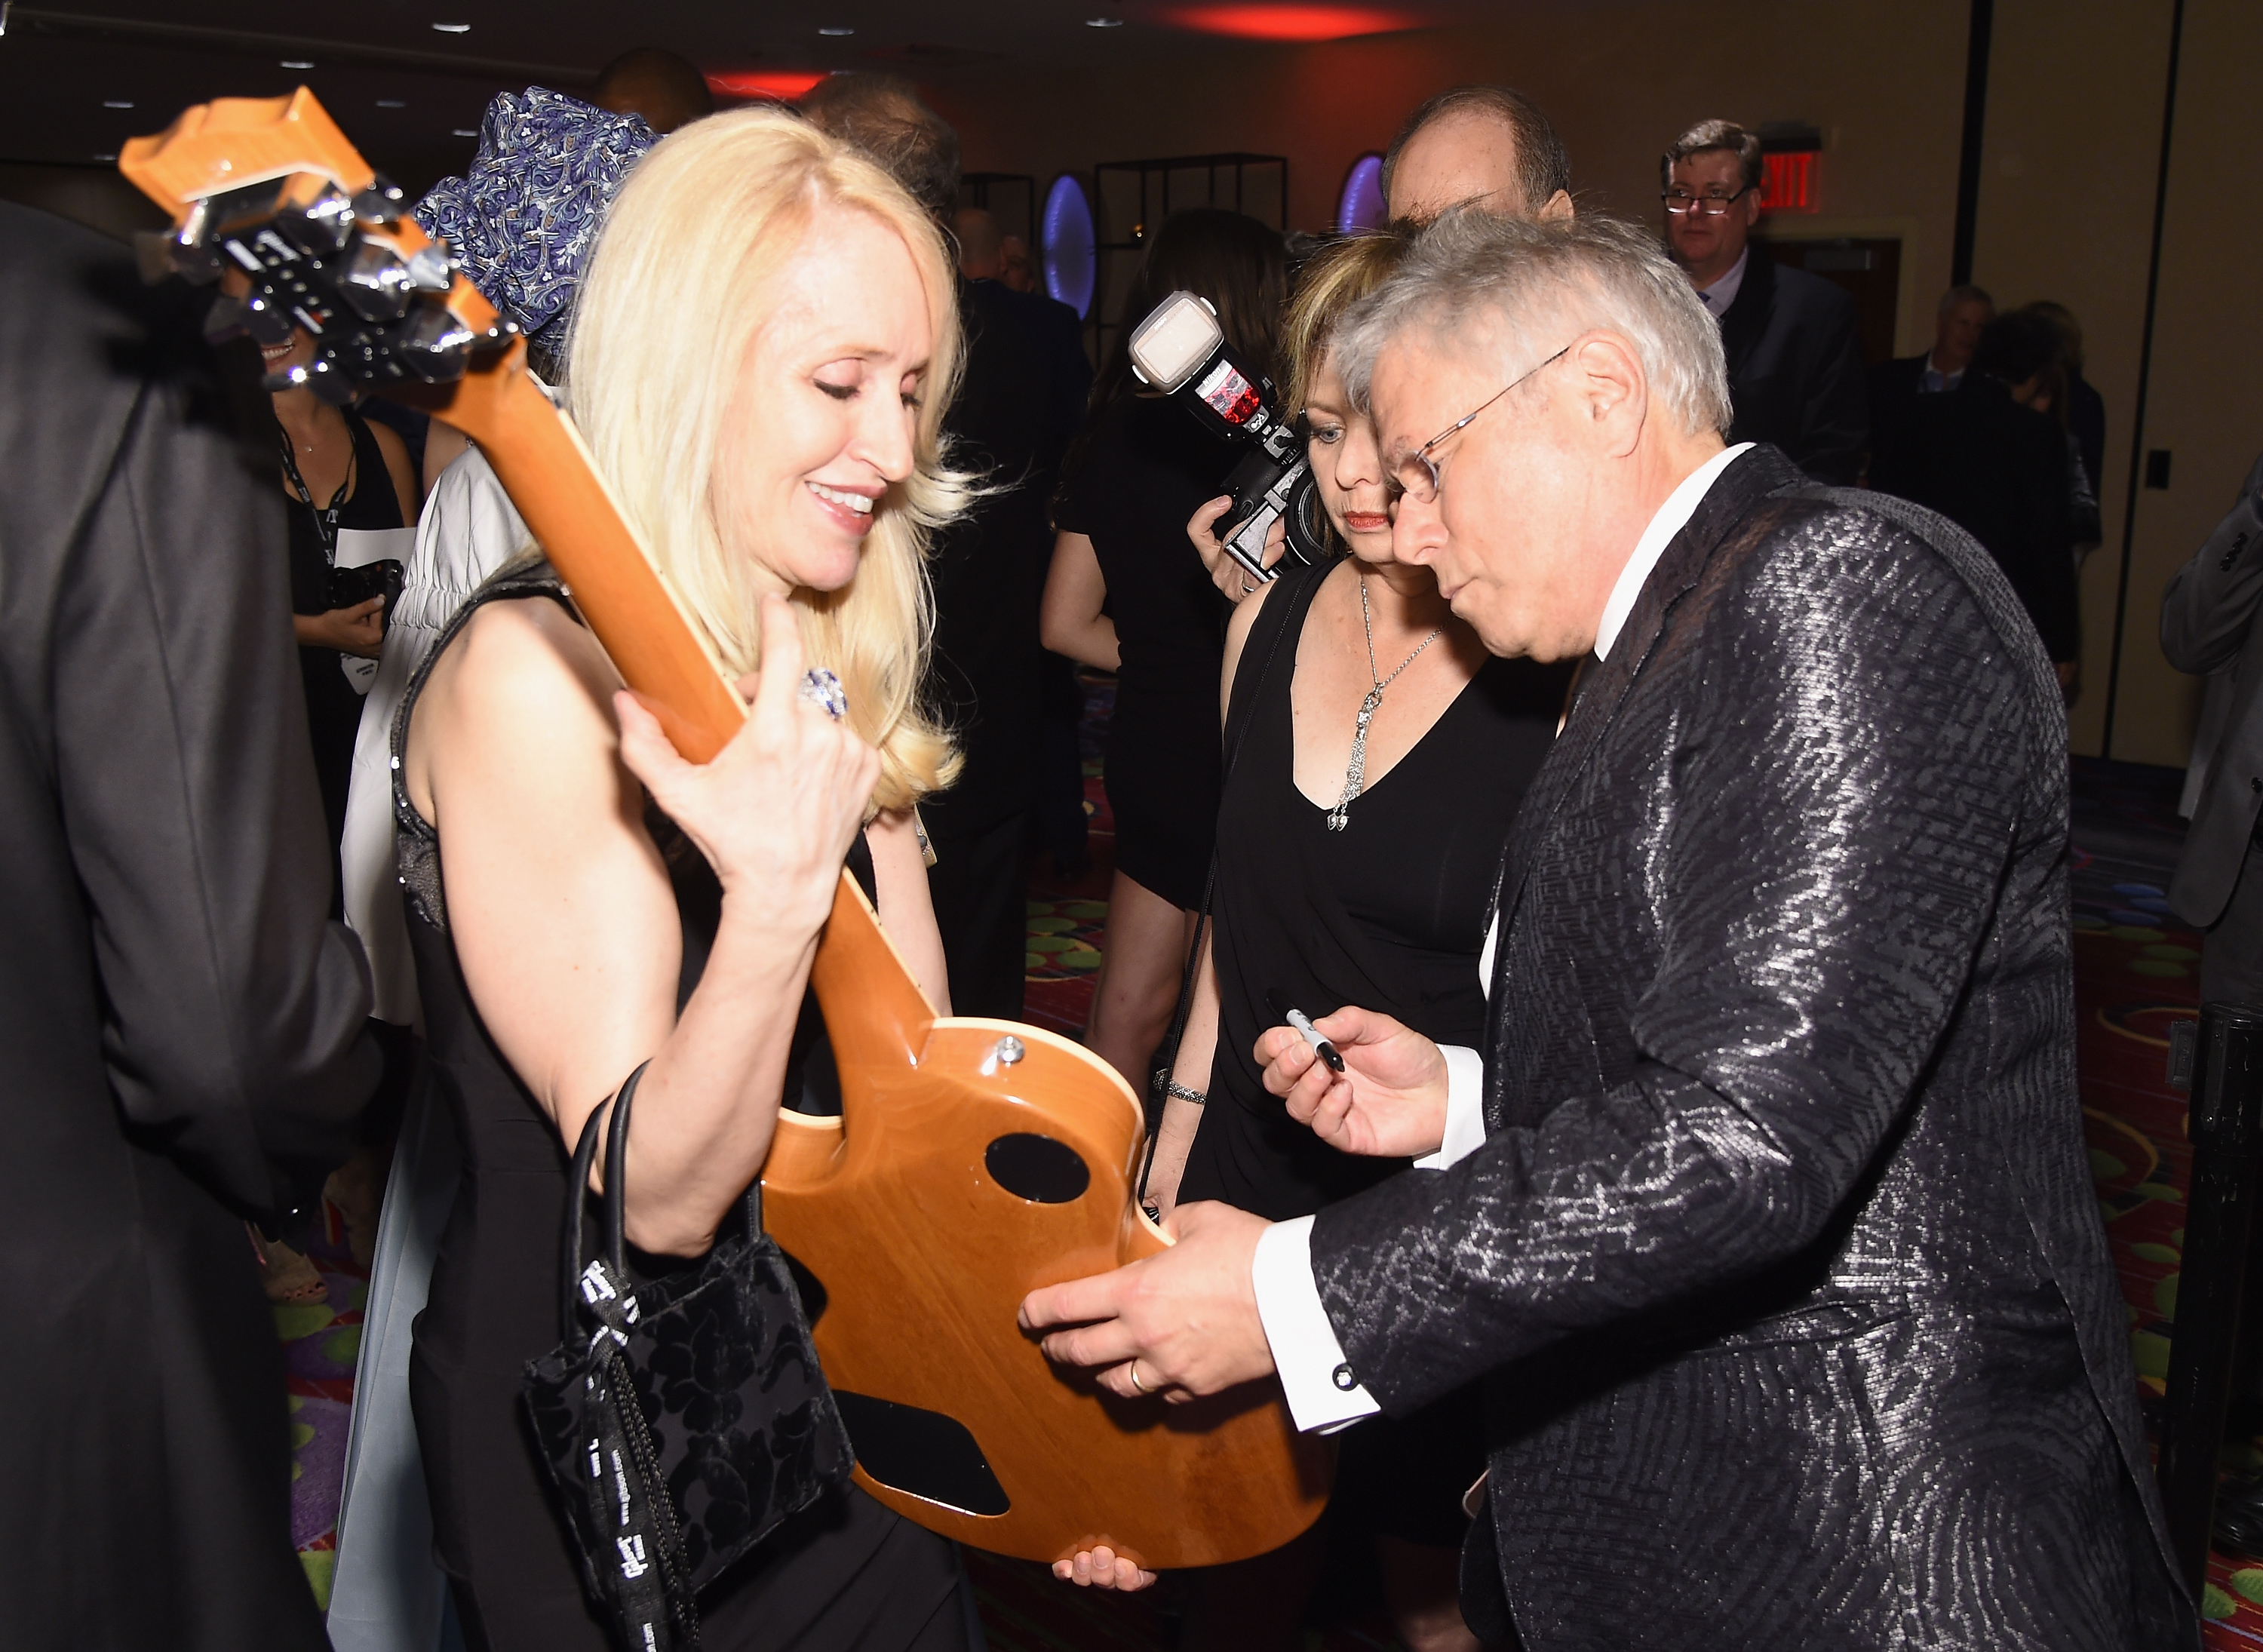 NEW YORK, NY - JUNE 15:  Johnny Mercer Award Honoree Alan Menken signs a guitar backstage at the Songwriters Hall Of Fame 48th Annual Induction and Awards at New York Marriott Marquis Hotel on June 15, 2017 in New York City.  (Photo by Larry Busacca/Getty Images for Songwriters Hall Of Fame) *** Local Caption *** Alan Menken